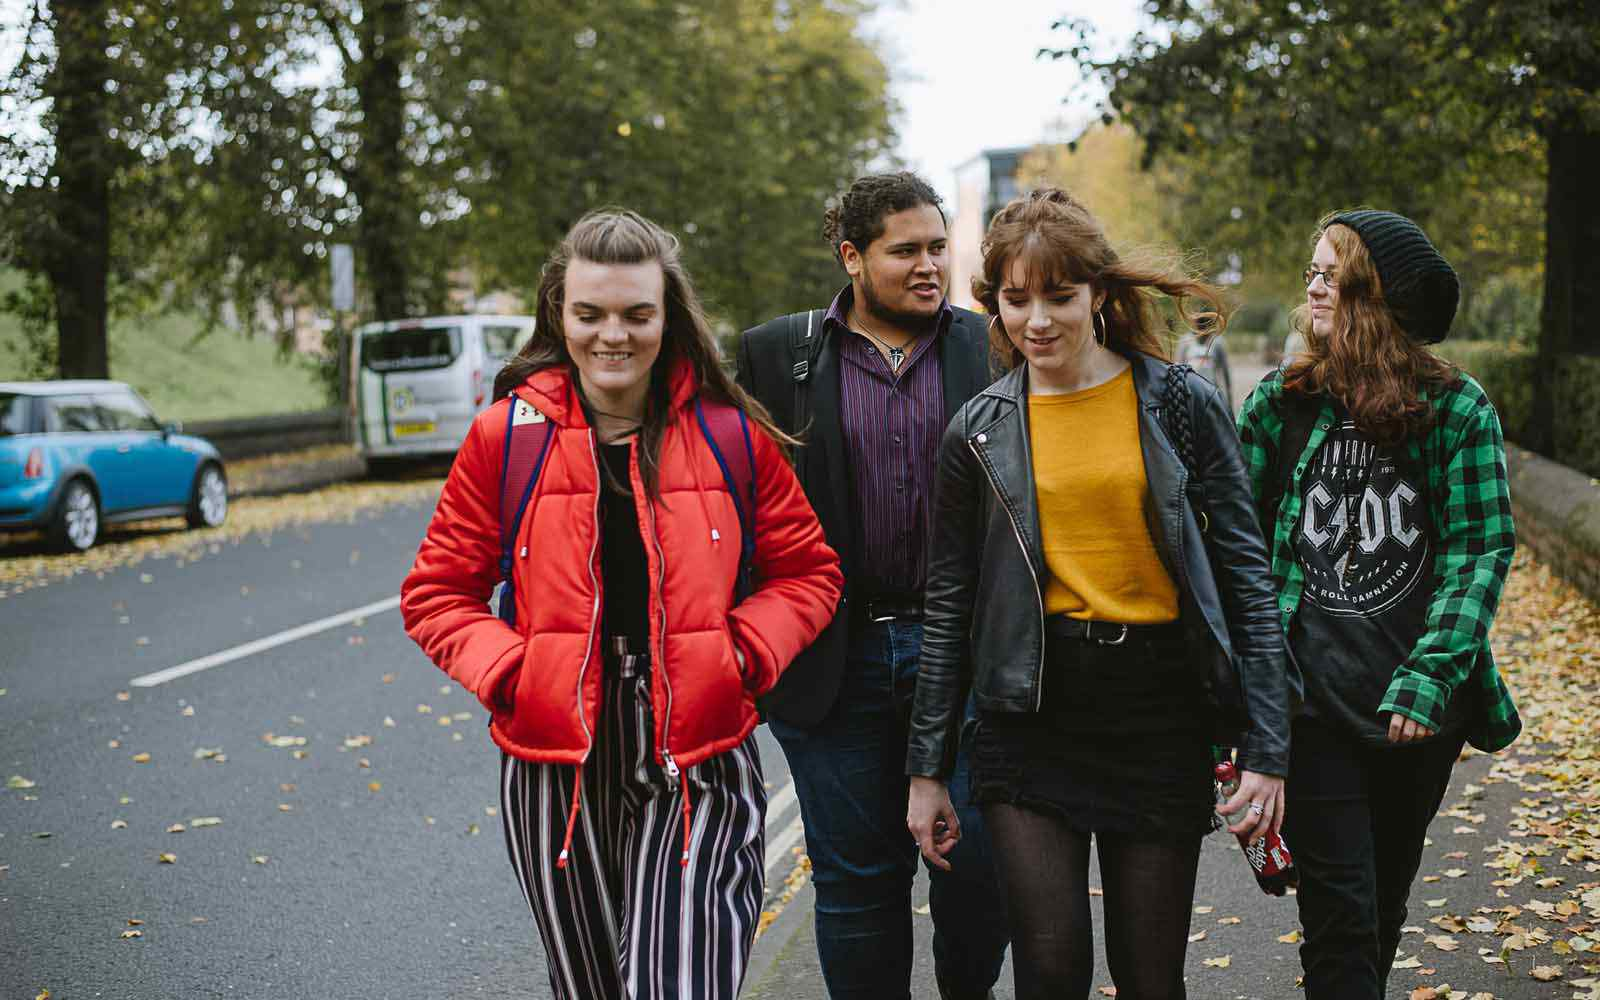 A group of four students walk and chat together outside the York St John campus.